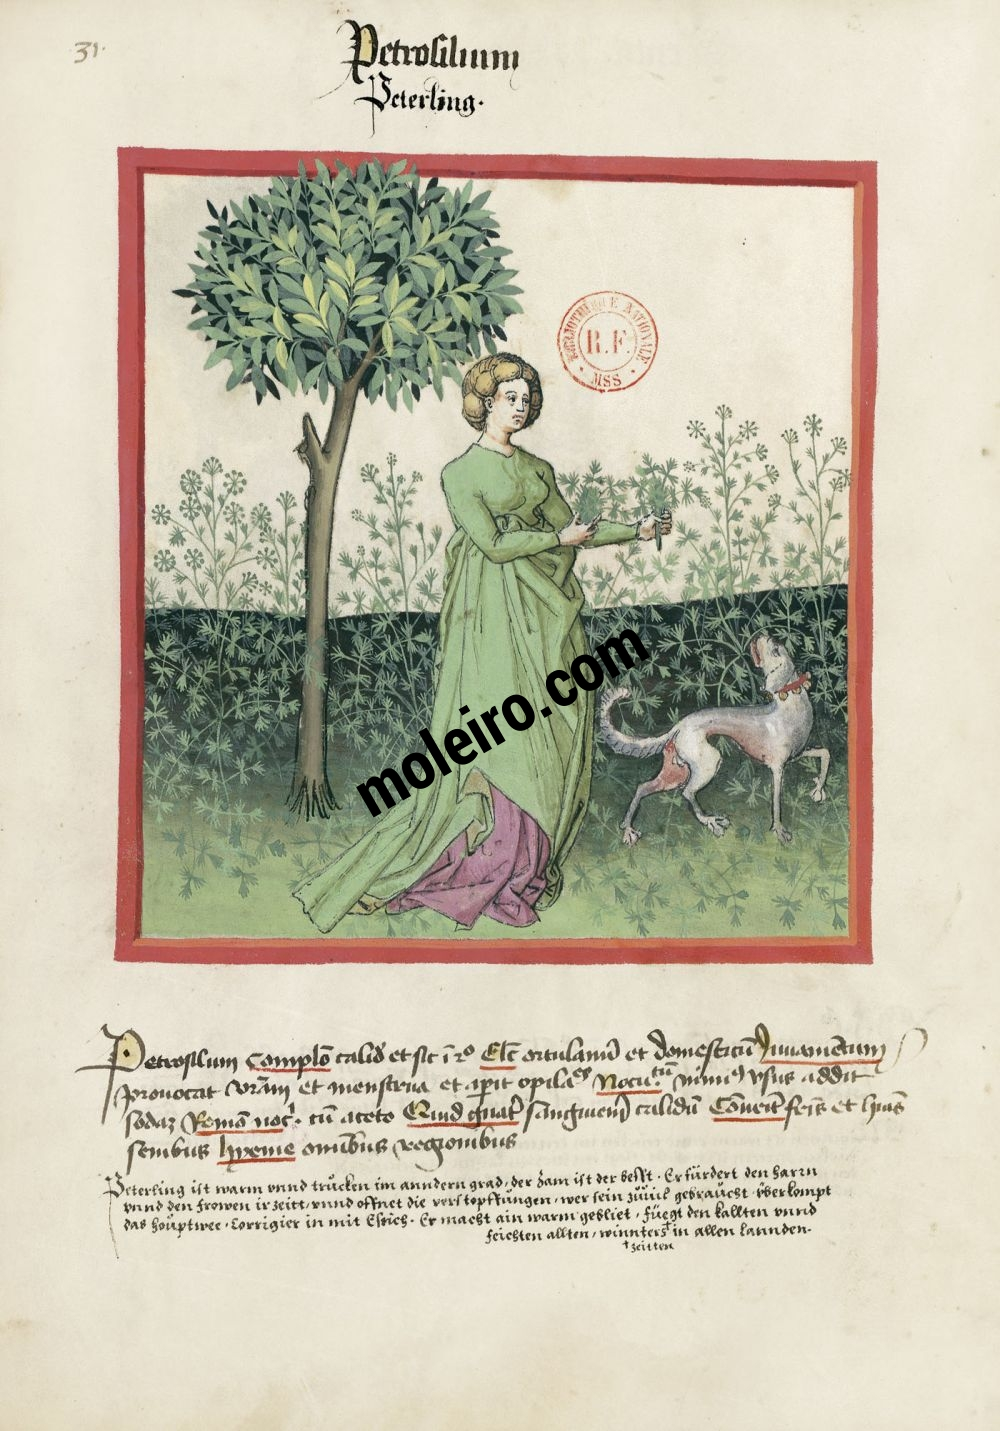 f. 31v, Prezzemolo. Tacuinum Sanitatis, Ms. Lat. 9333. Bibliothèque nationale de France, Parigi